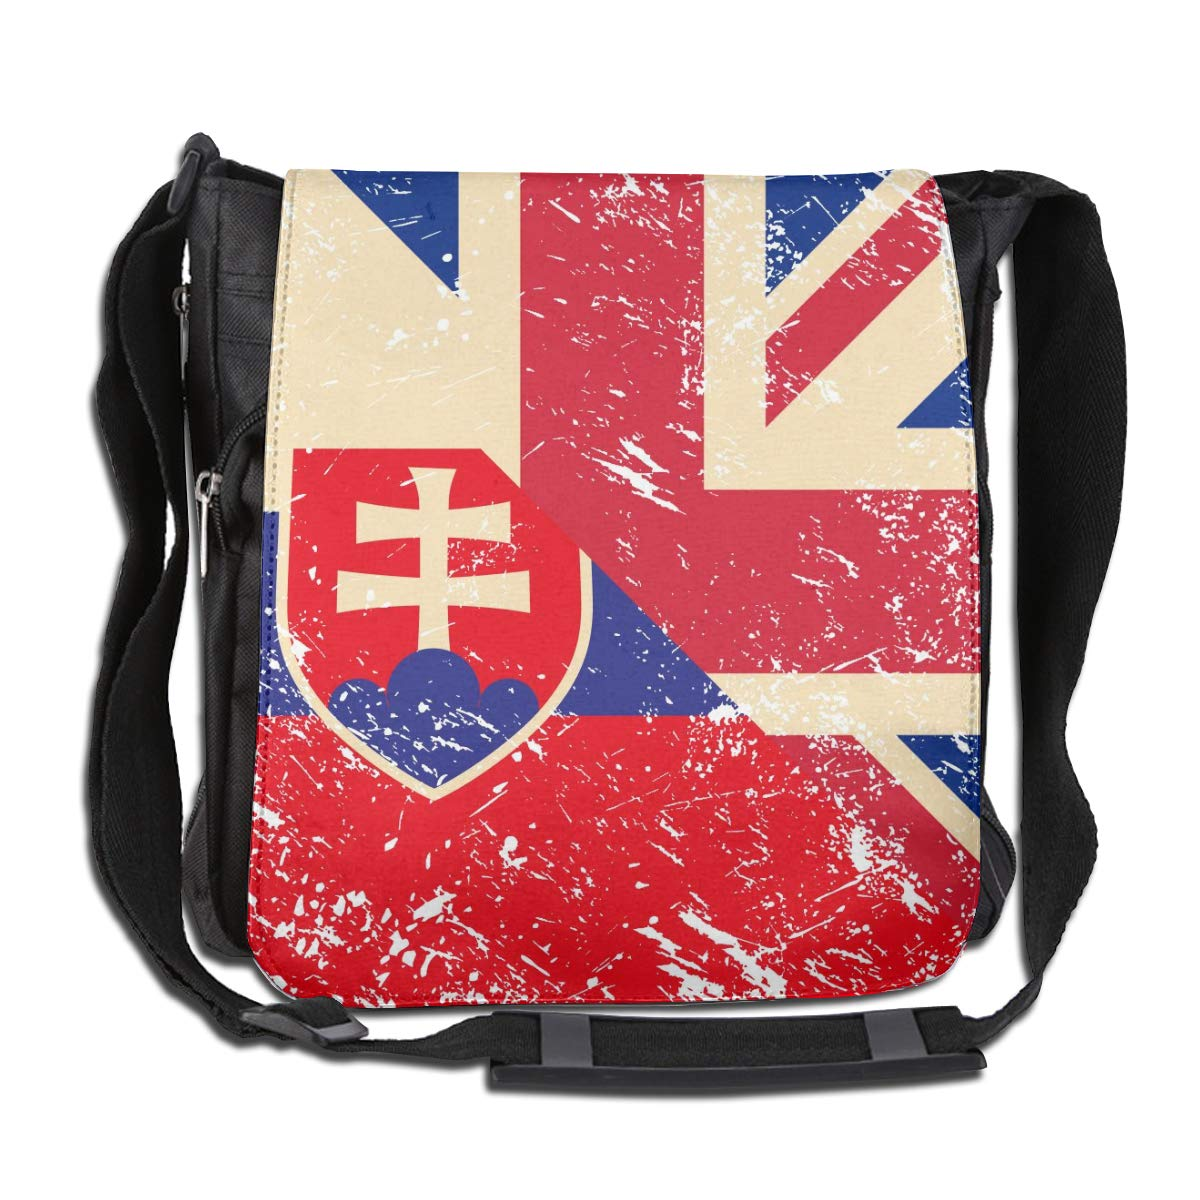 Unisex Casual Satchel Messenger Bags Birtish And Slovenia Retro Flag Crossbody Shoulder Bag School Bags For School//Work//Trips